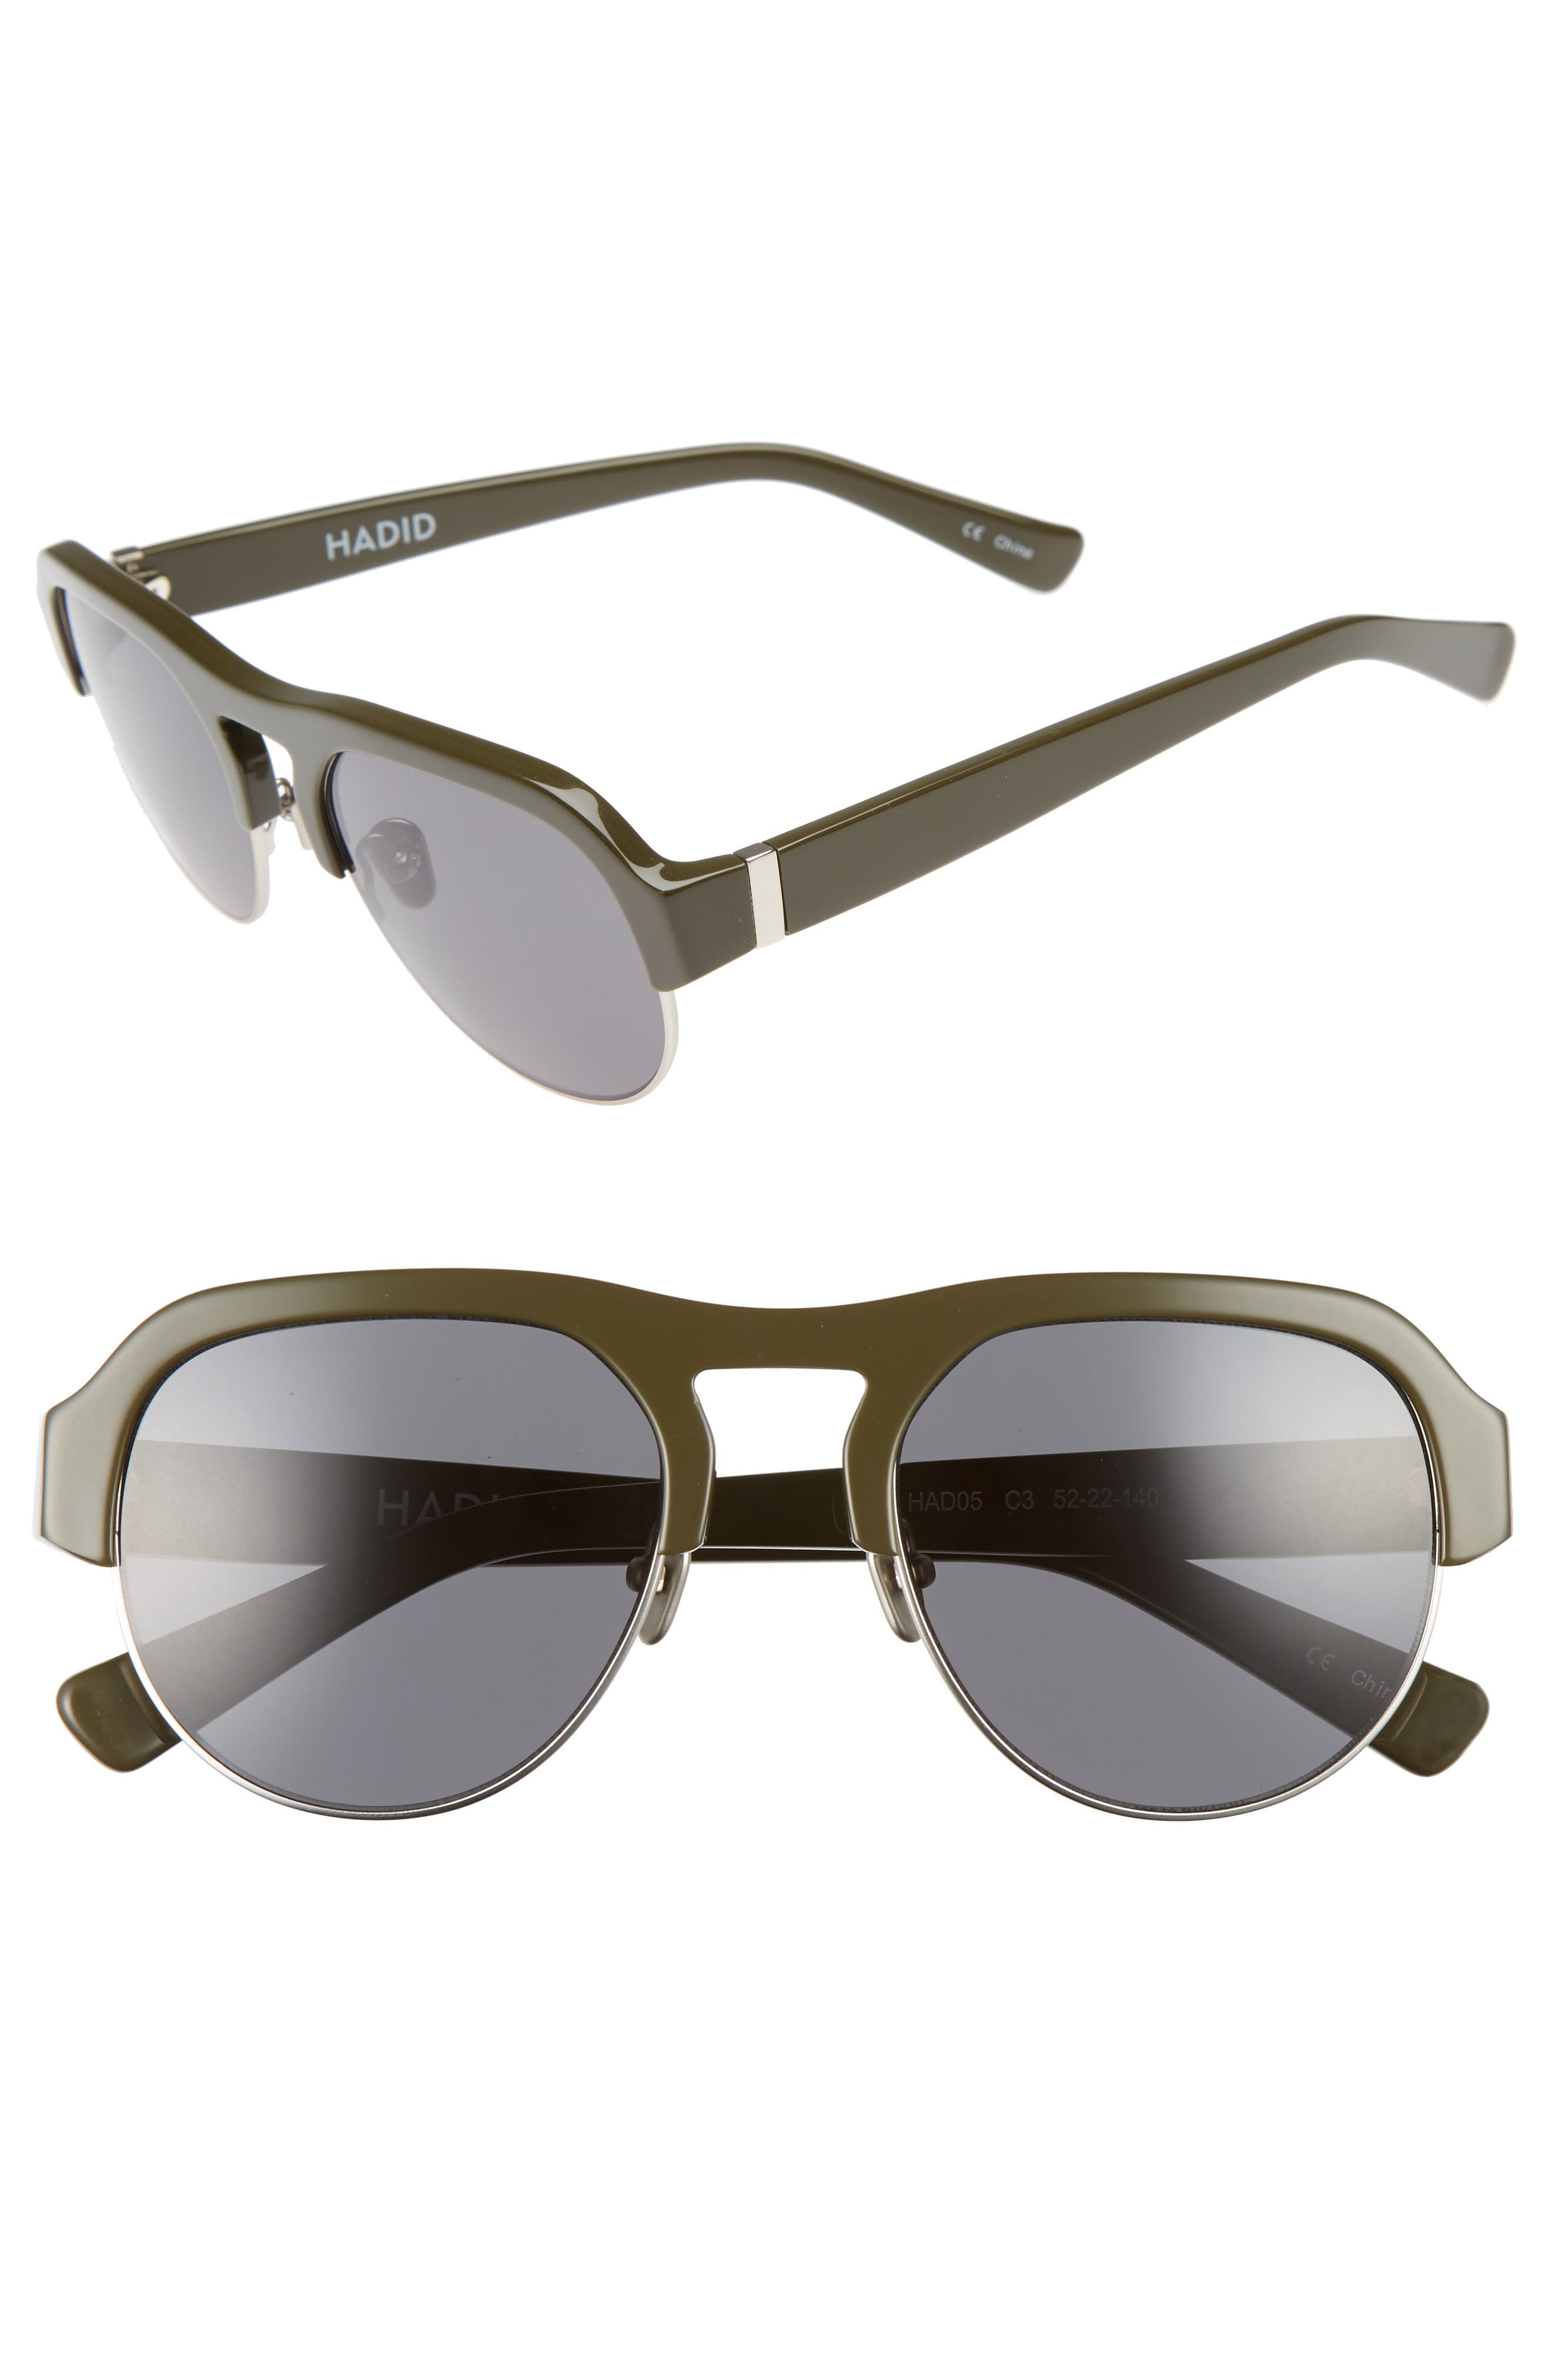 Nomad 52mm Sunglasses,                         Main,                         color, OLIVE/ SILVER